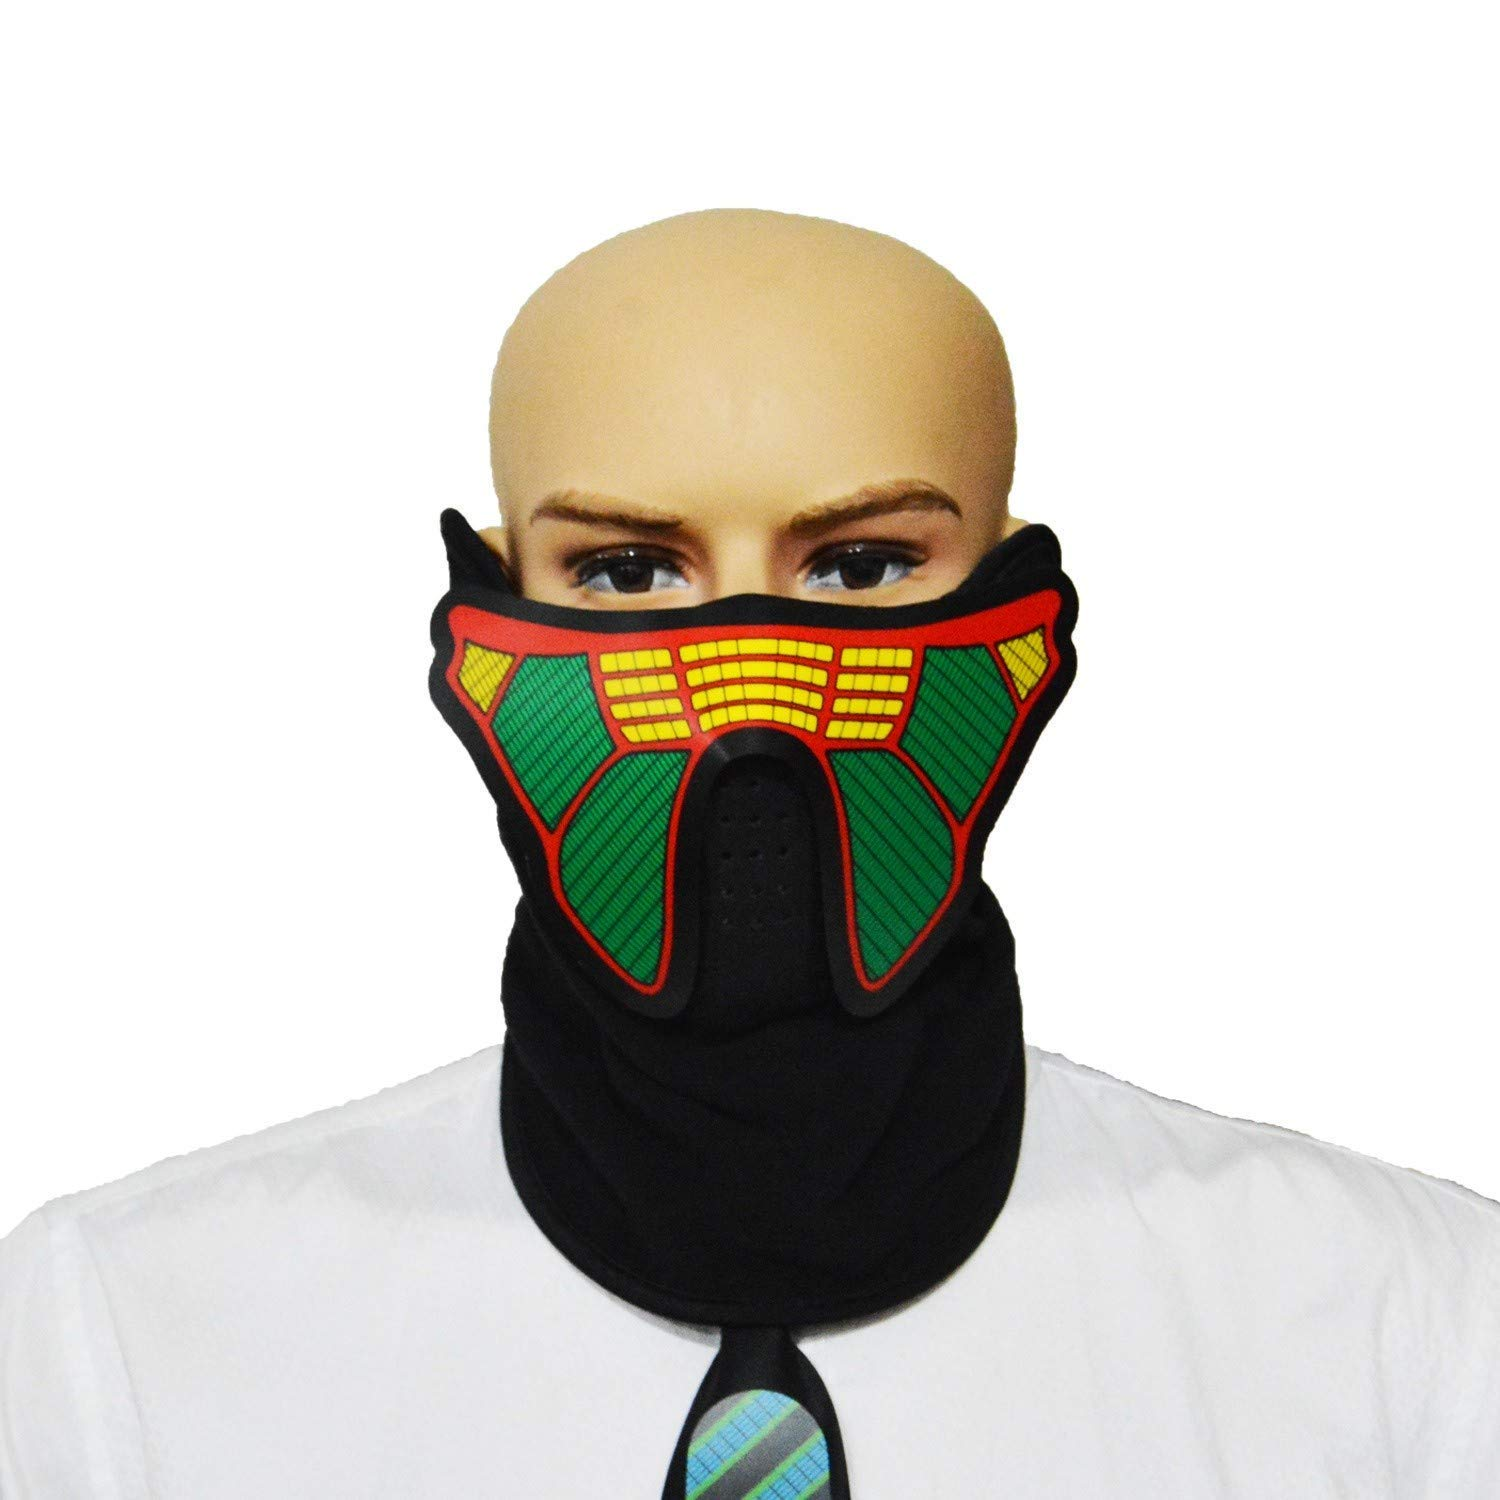 Cheap Glowing Eyes Mask  Find Glowing Eyes Mask Deals On